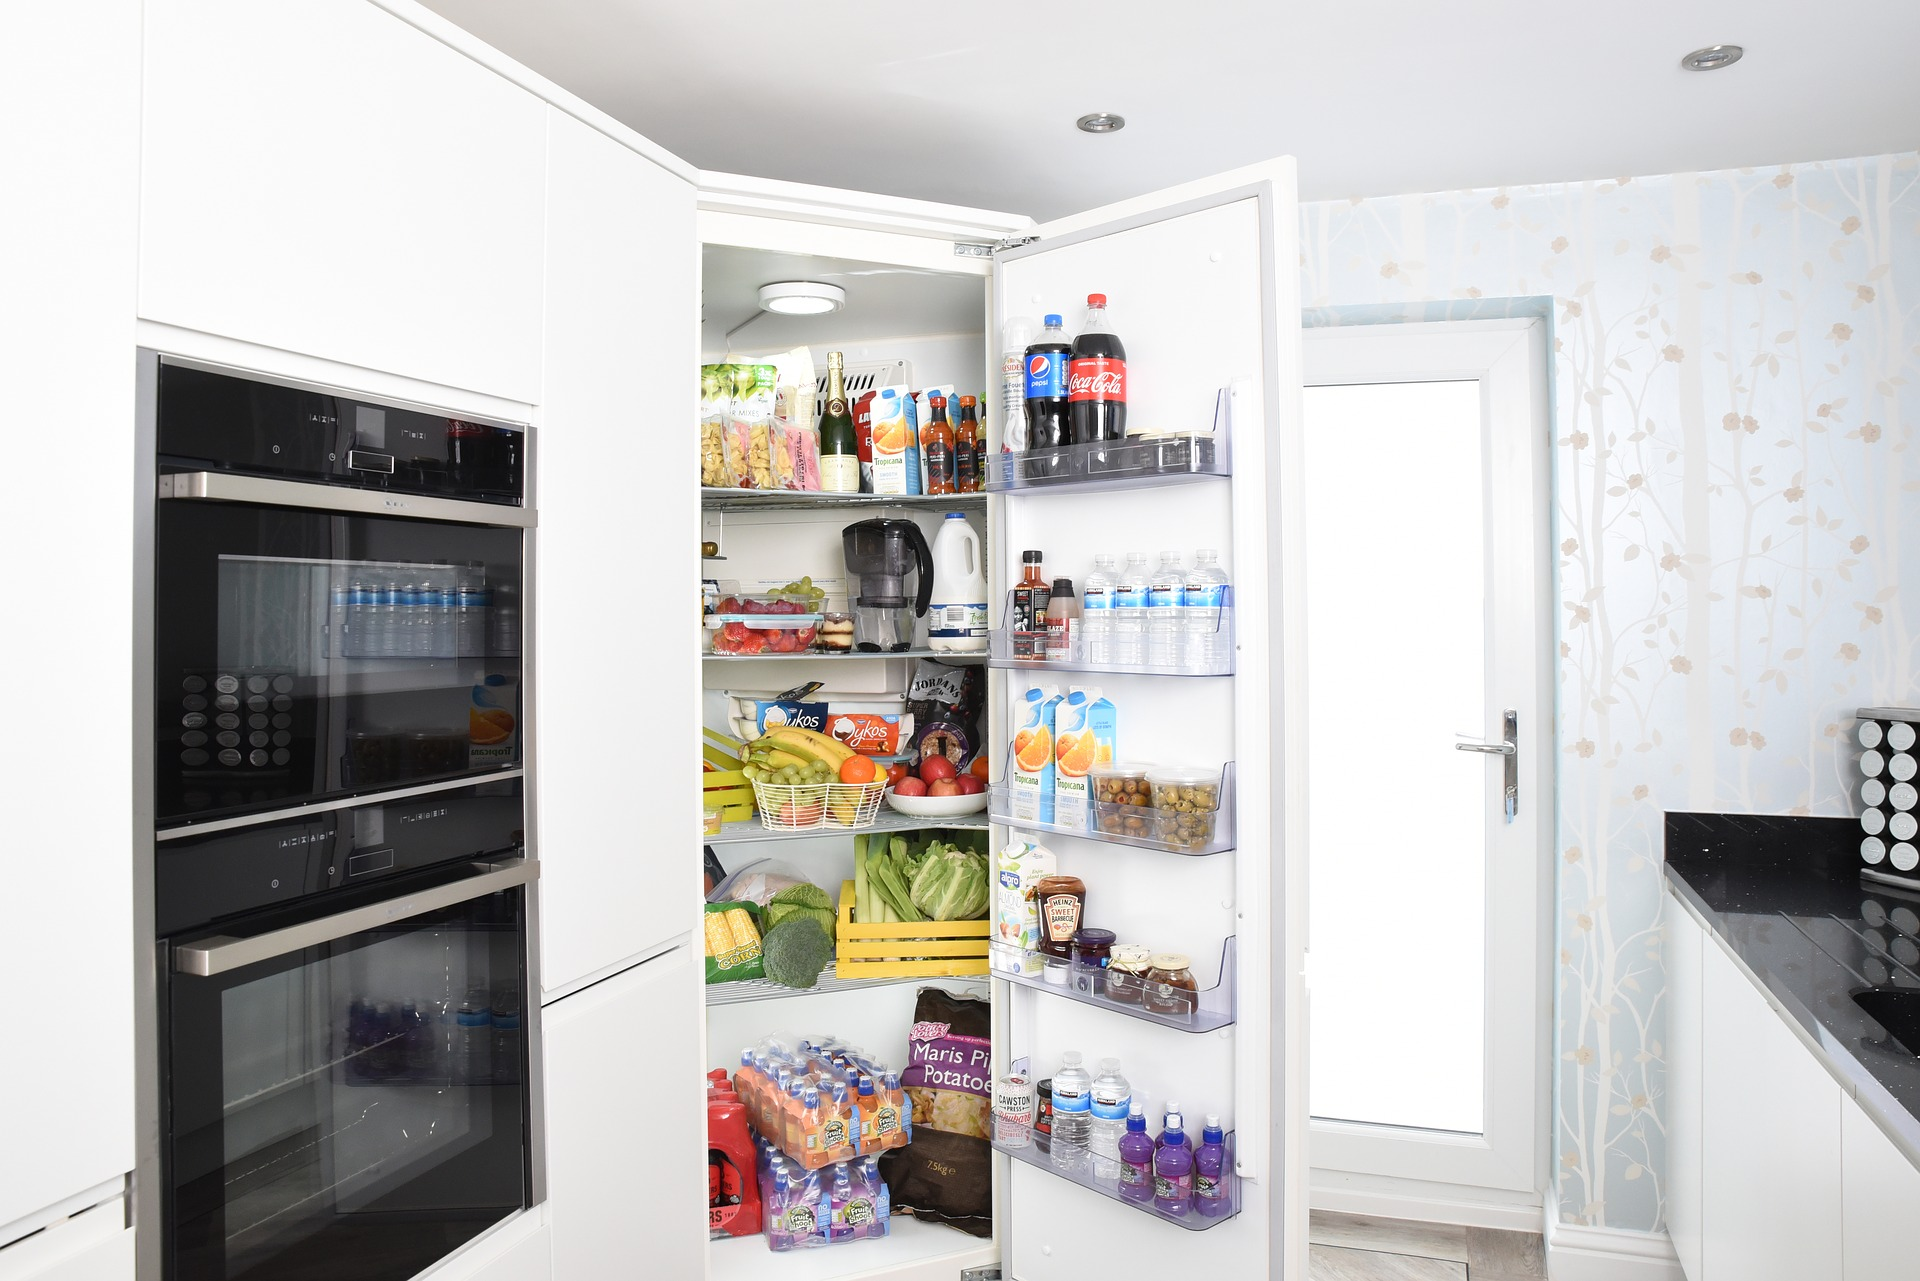 https://pixabay.com/photos/fridge-fridge-door-refrigerator-3475996/